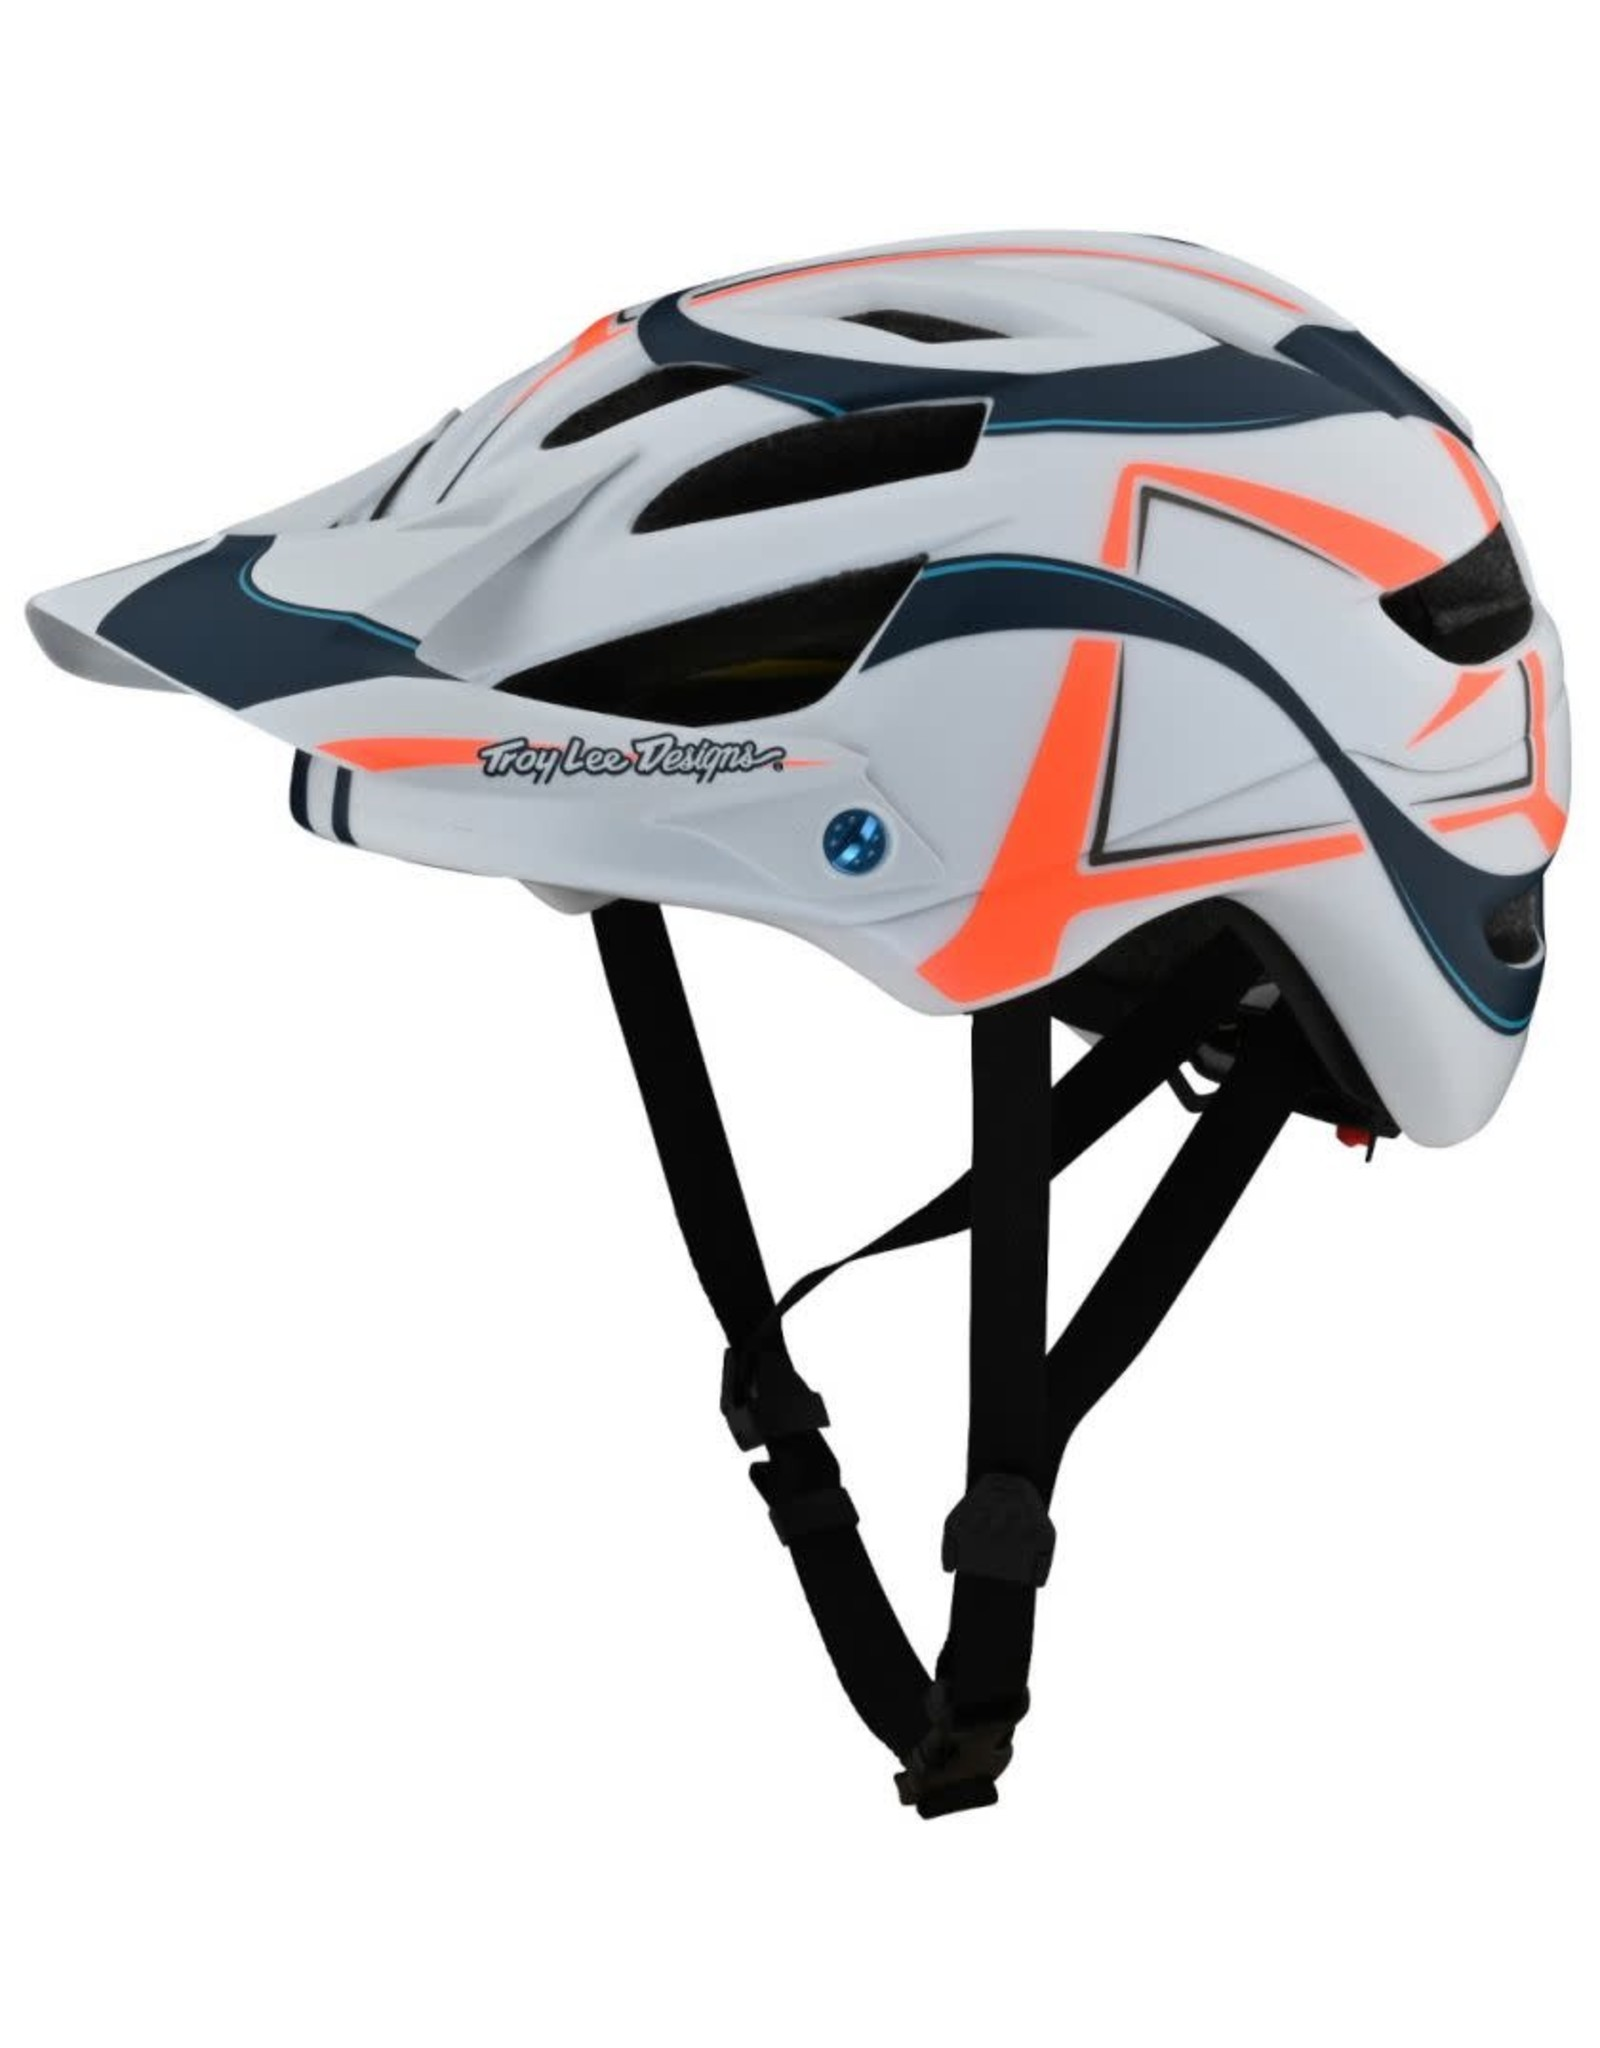 TROY LEE DESIGNS TROY LEE DESIGNS '21 A1 AS YOUTH CLASSIC HELMET MIPS WELTER WHITE/MARINE